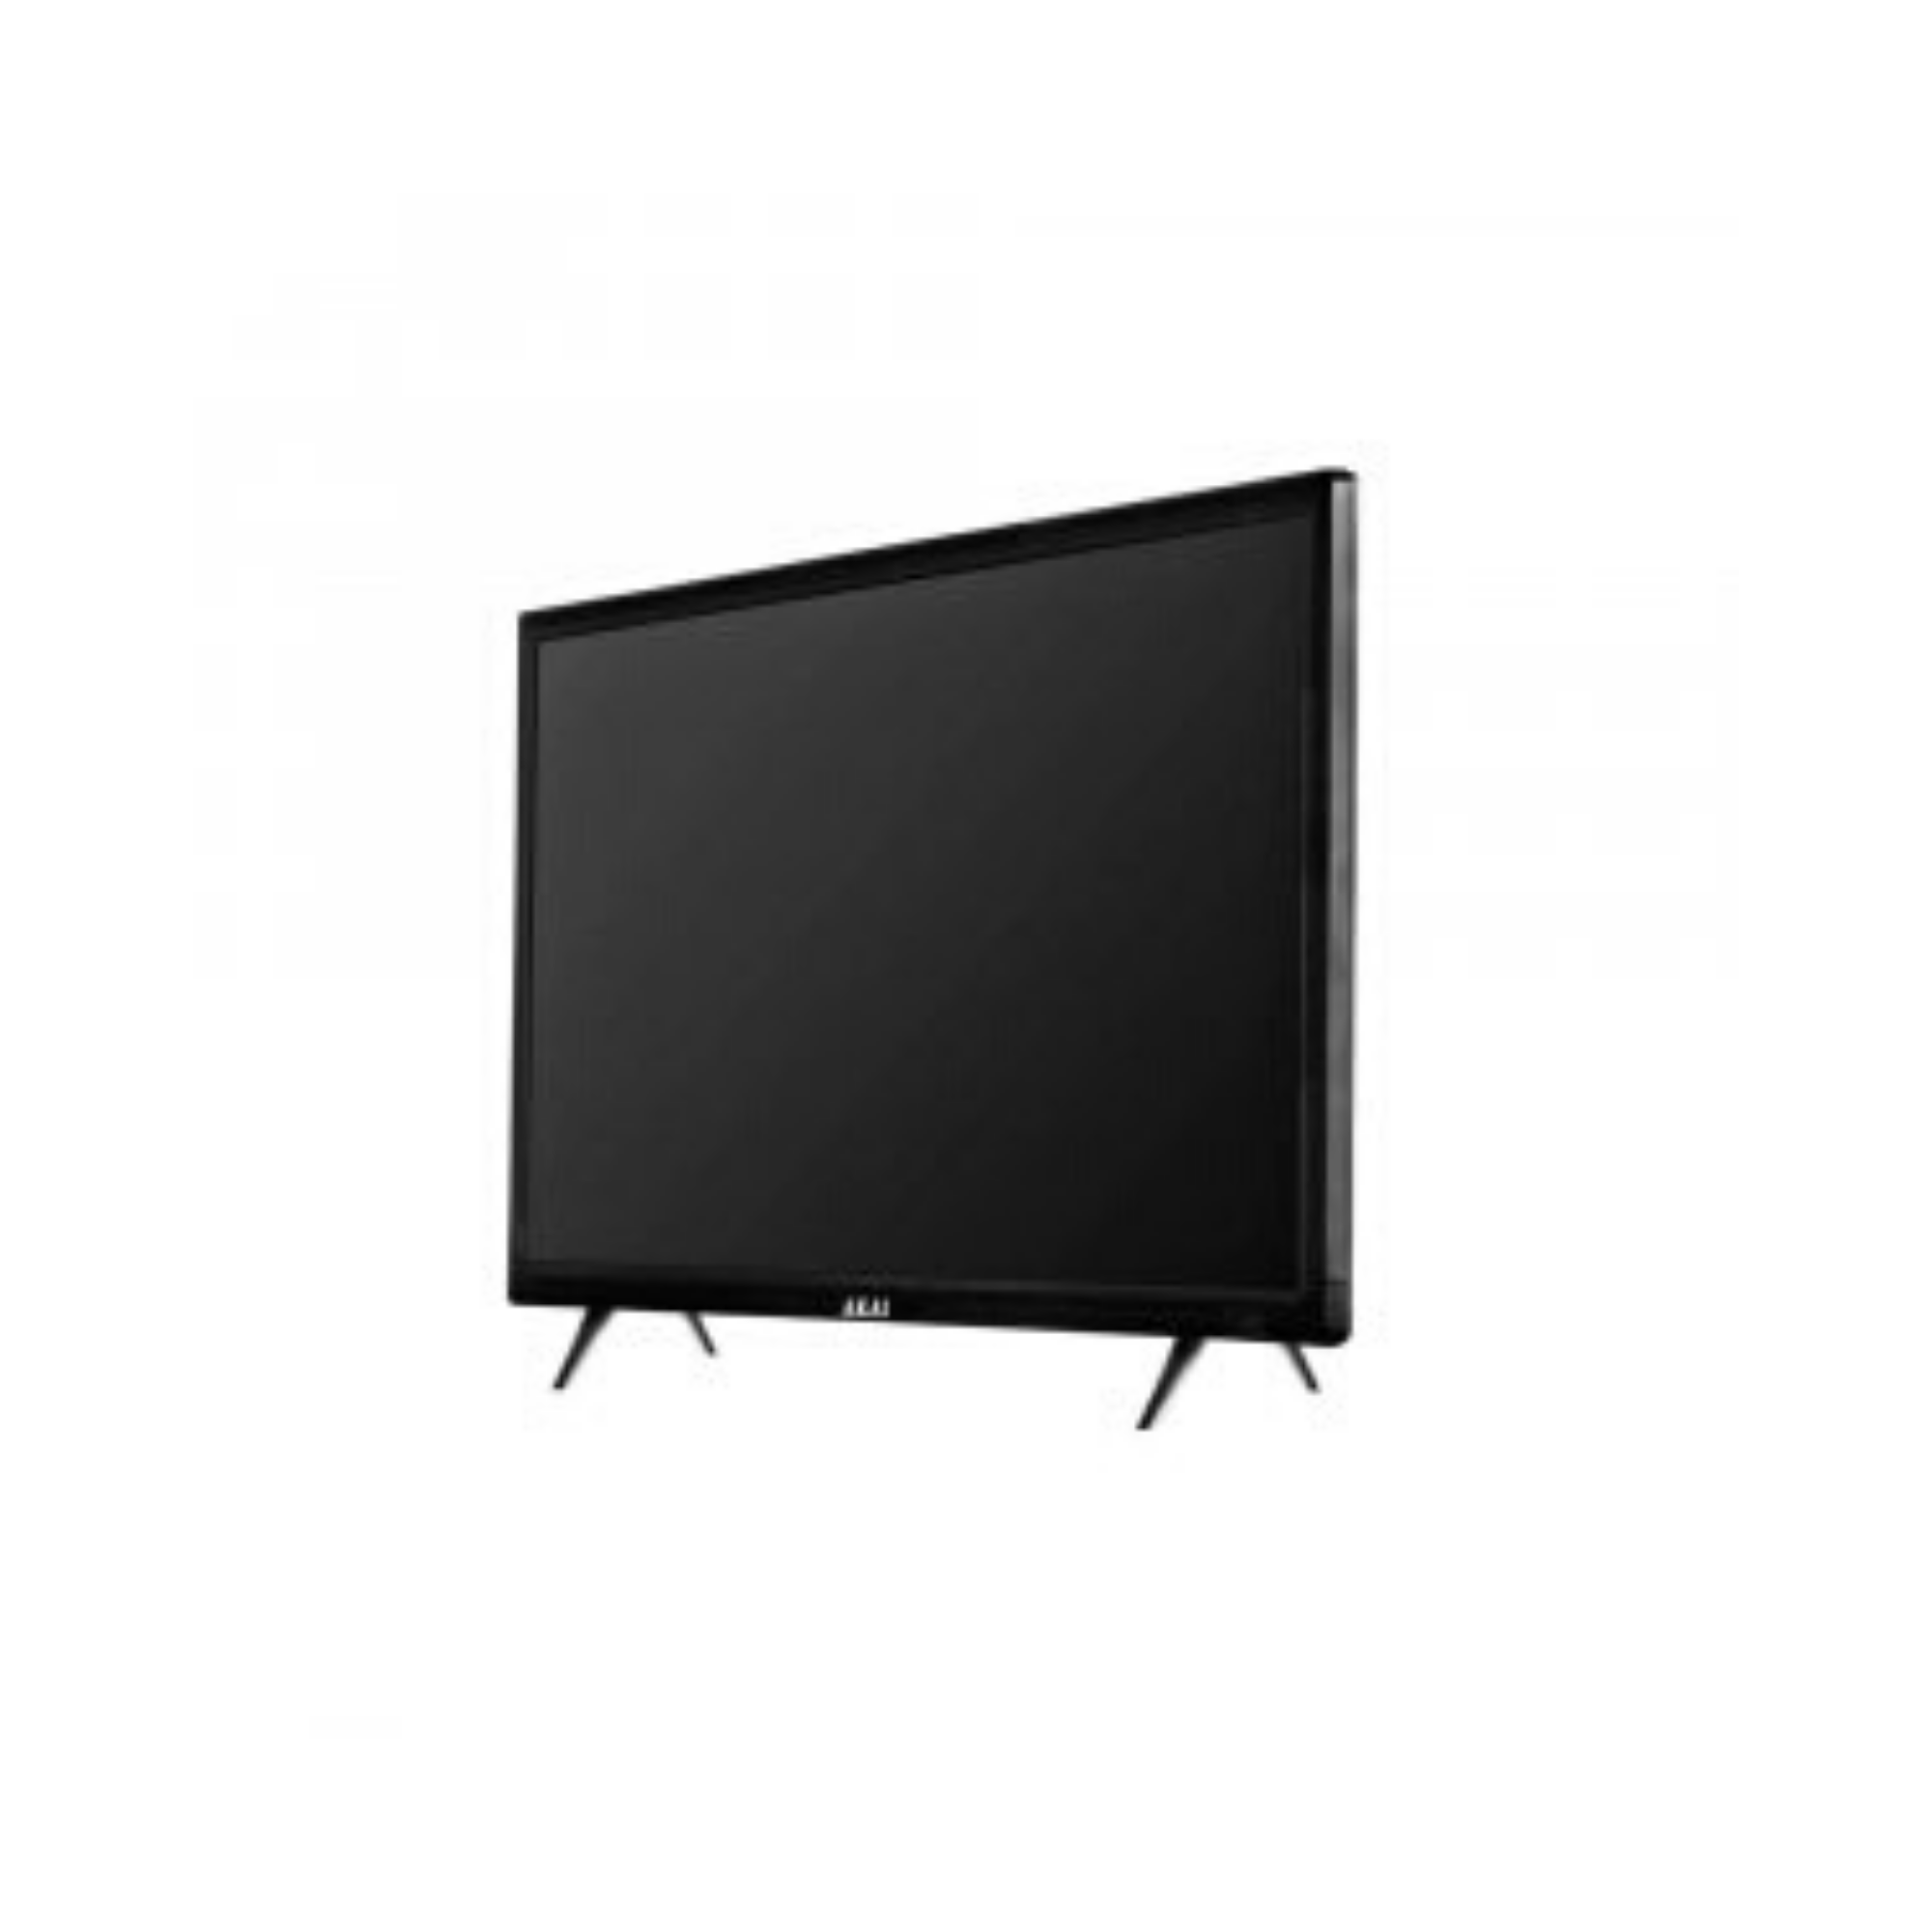 Akai 109 cm (43 Inches) Full HD Smart LED TV AKLT43S-D438V (Black)